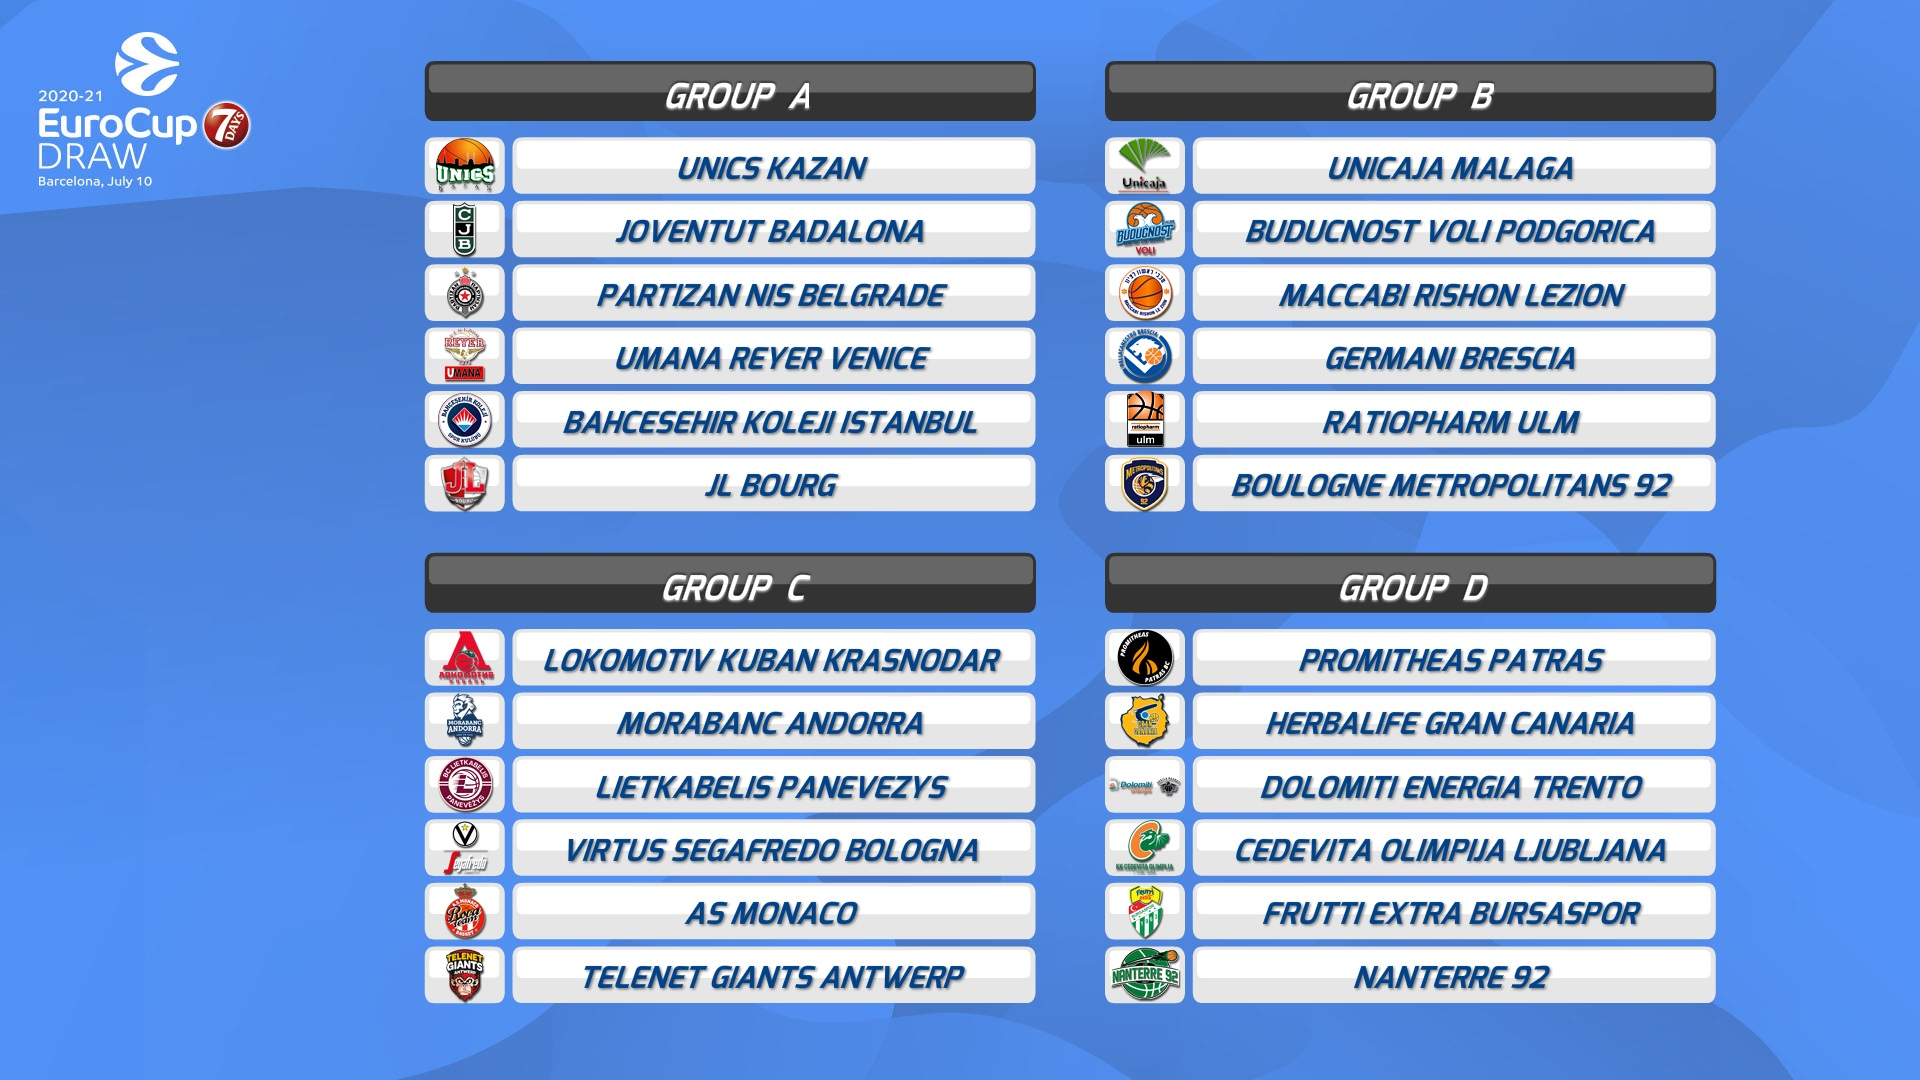 7DAYS EuroCup20 rs draw 101